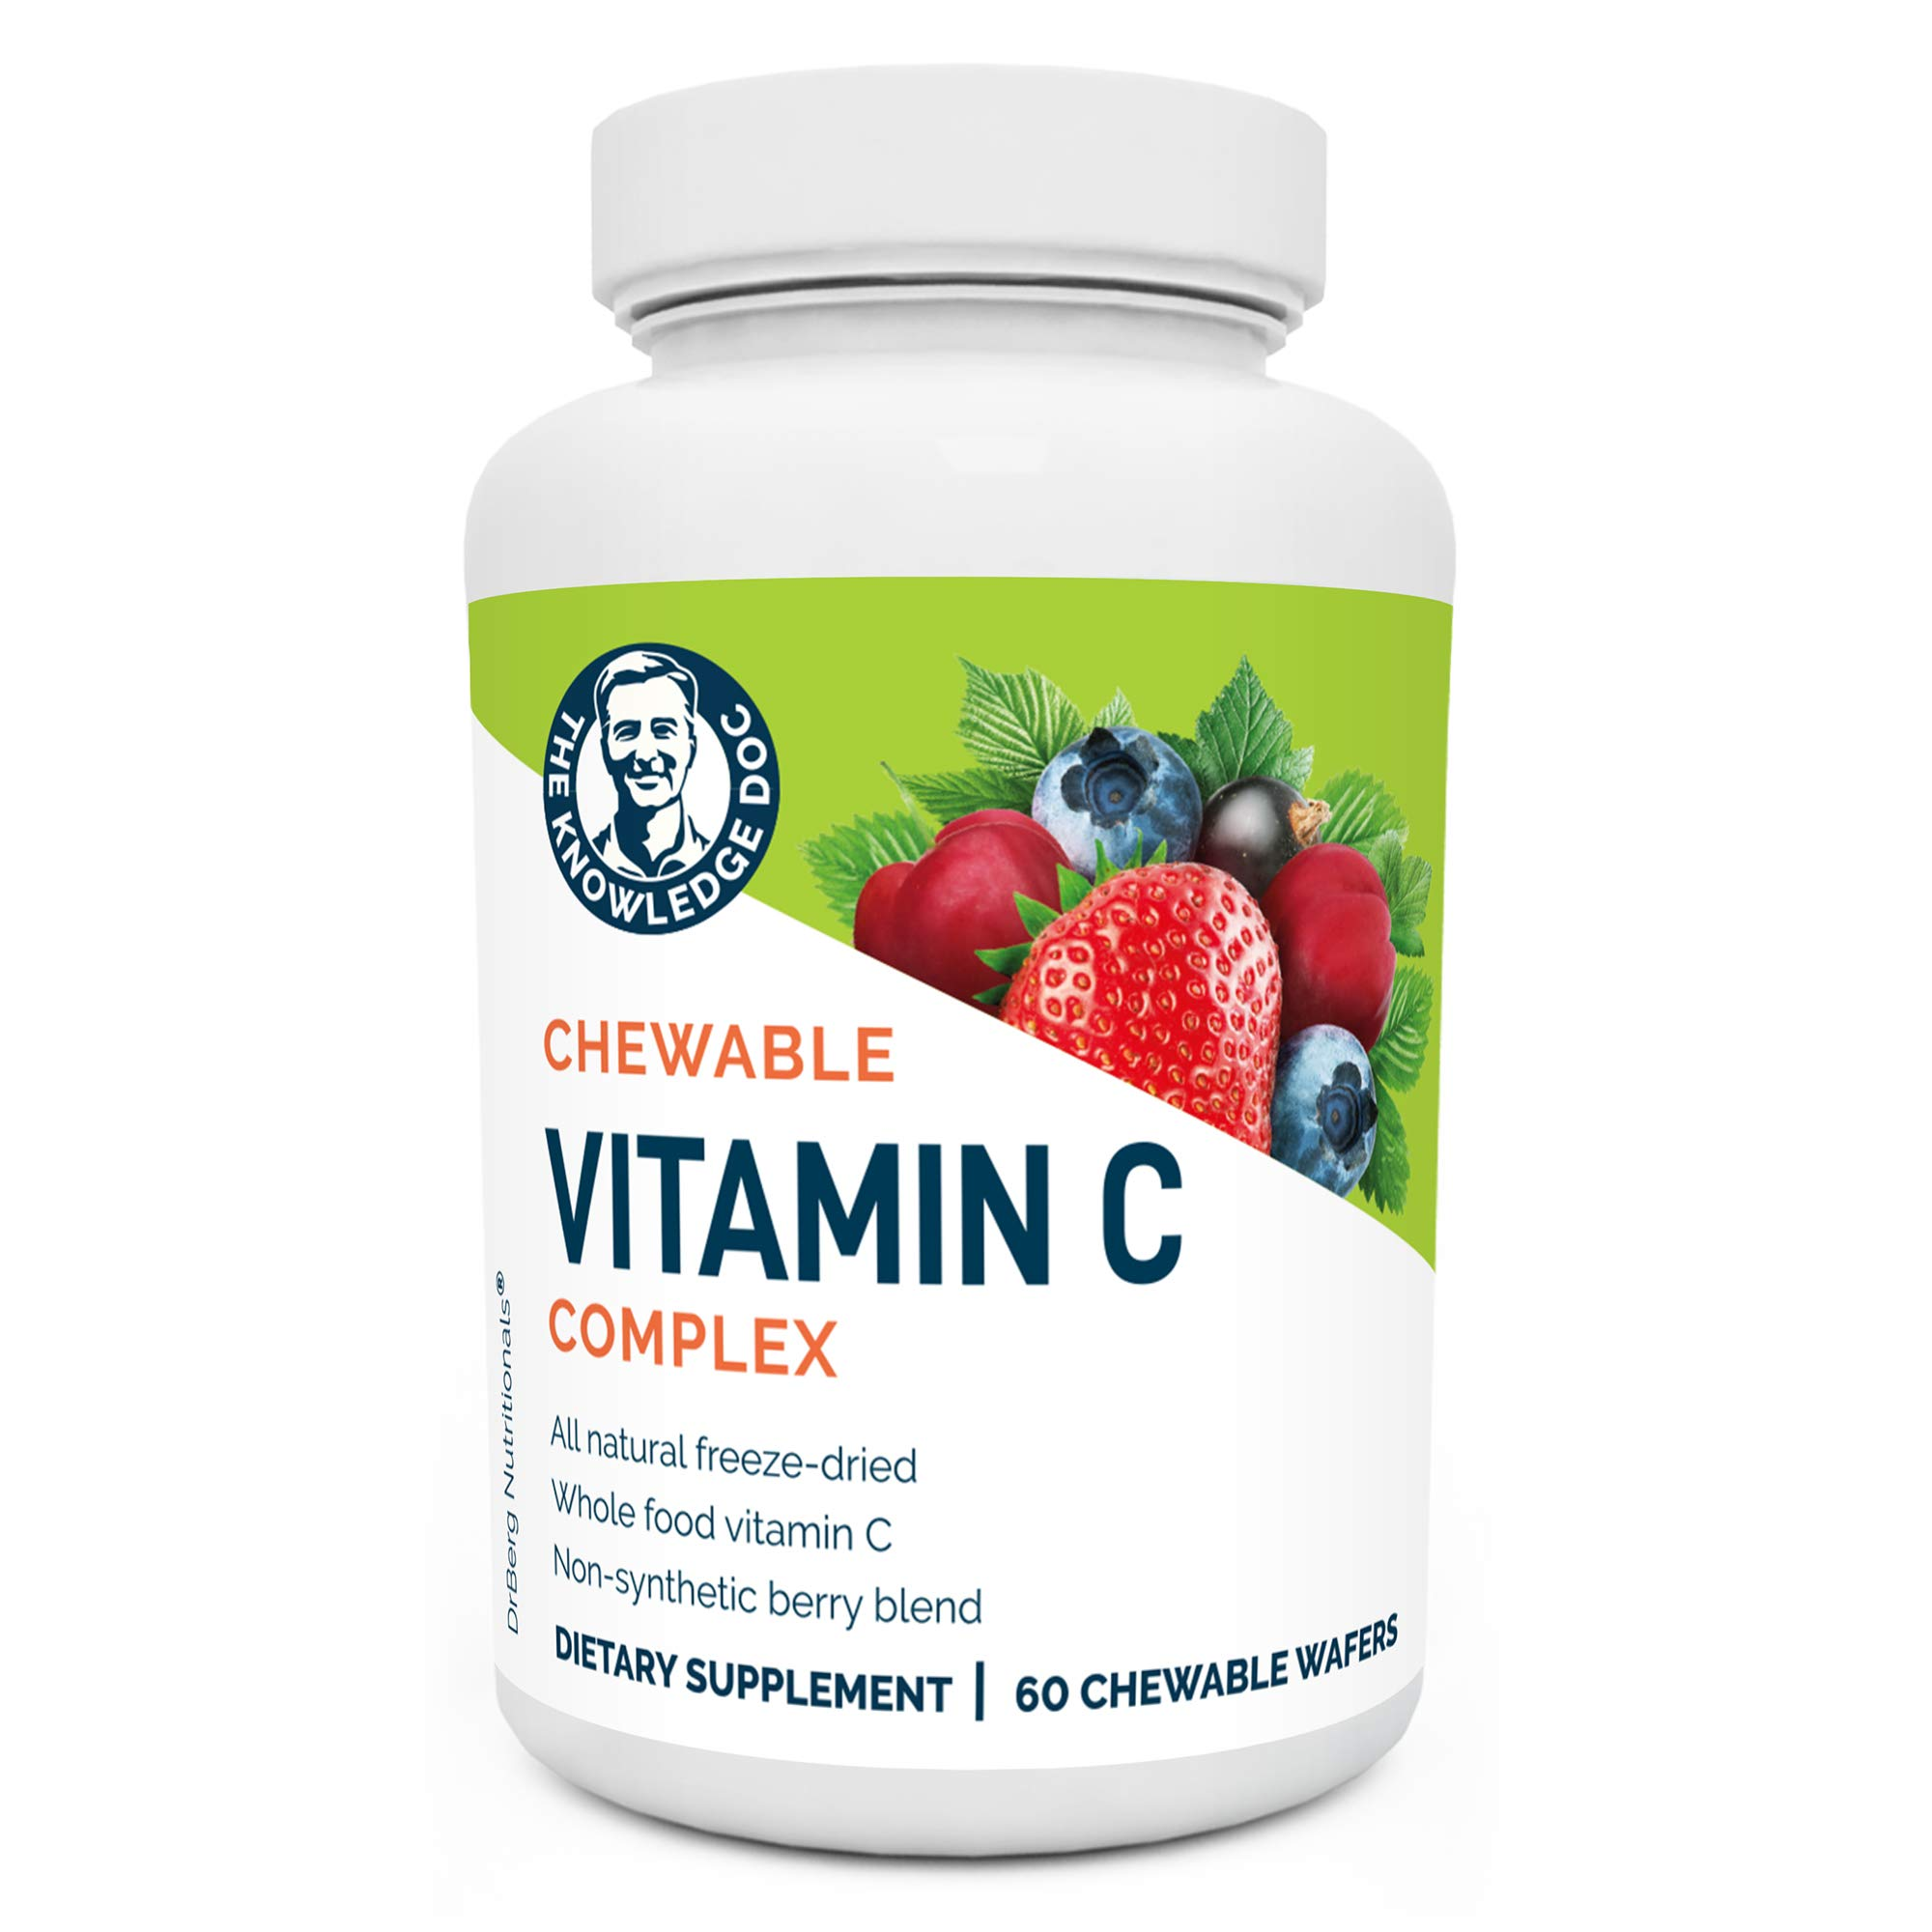 Dr. Berg's Vitamin C Complex Whole Food (60 Chewable) 100% Natural Vitamin C from Just 4 Berries, Non-GMO